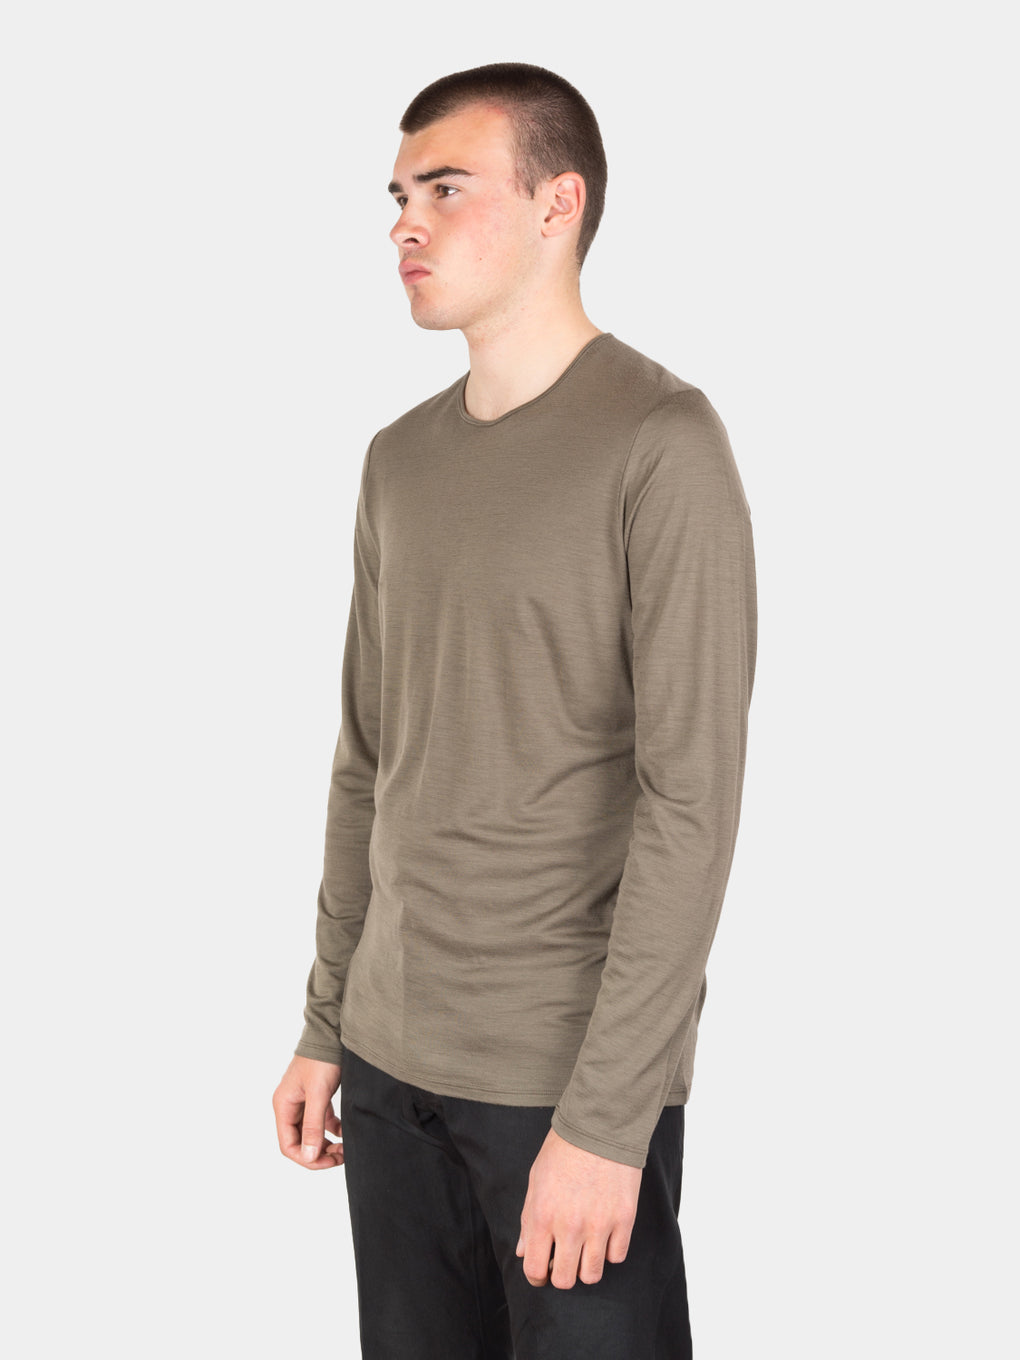 frame shirt ls, mortar, veilance, on model side view